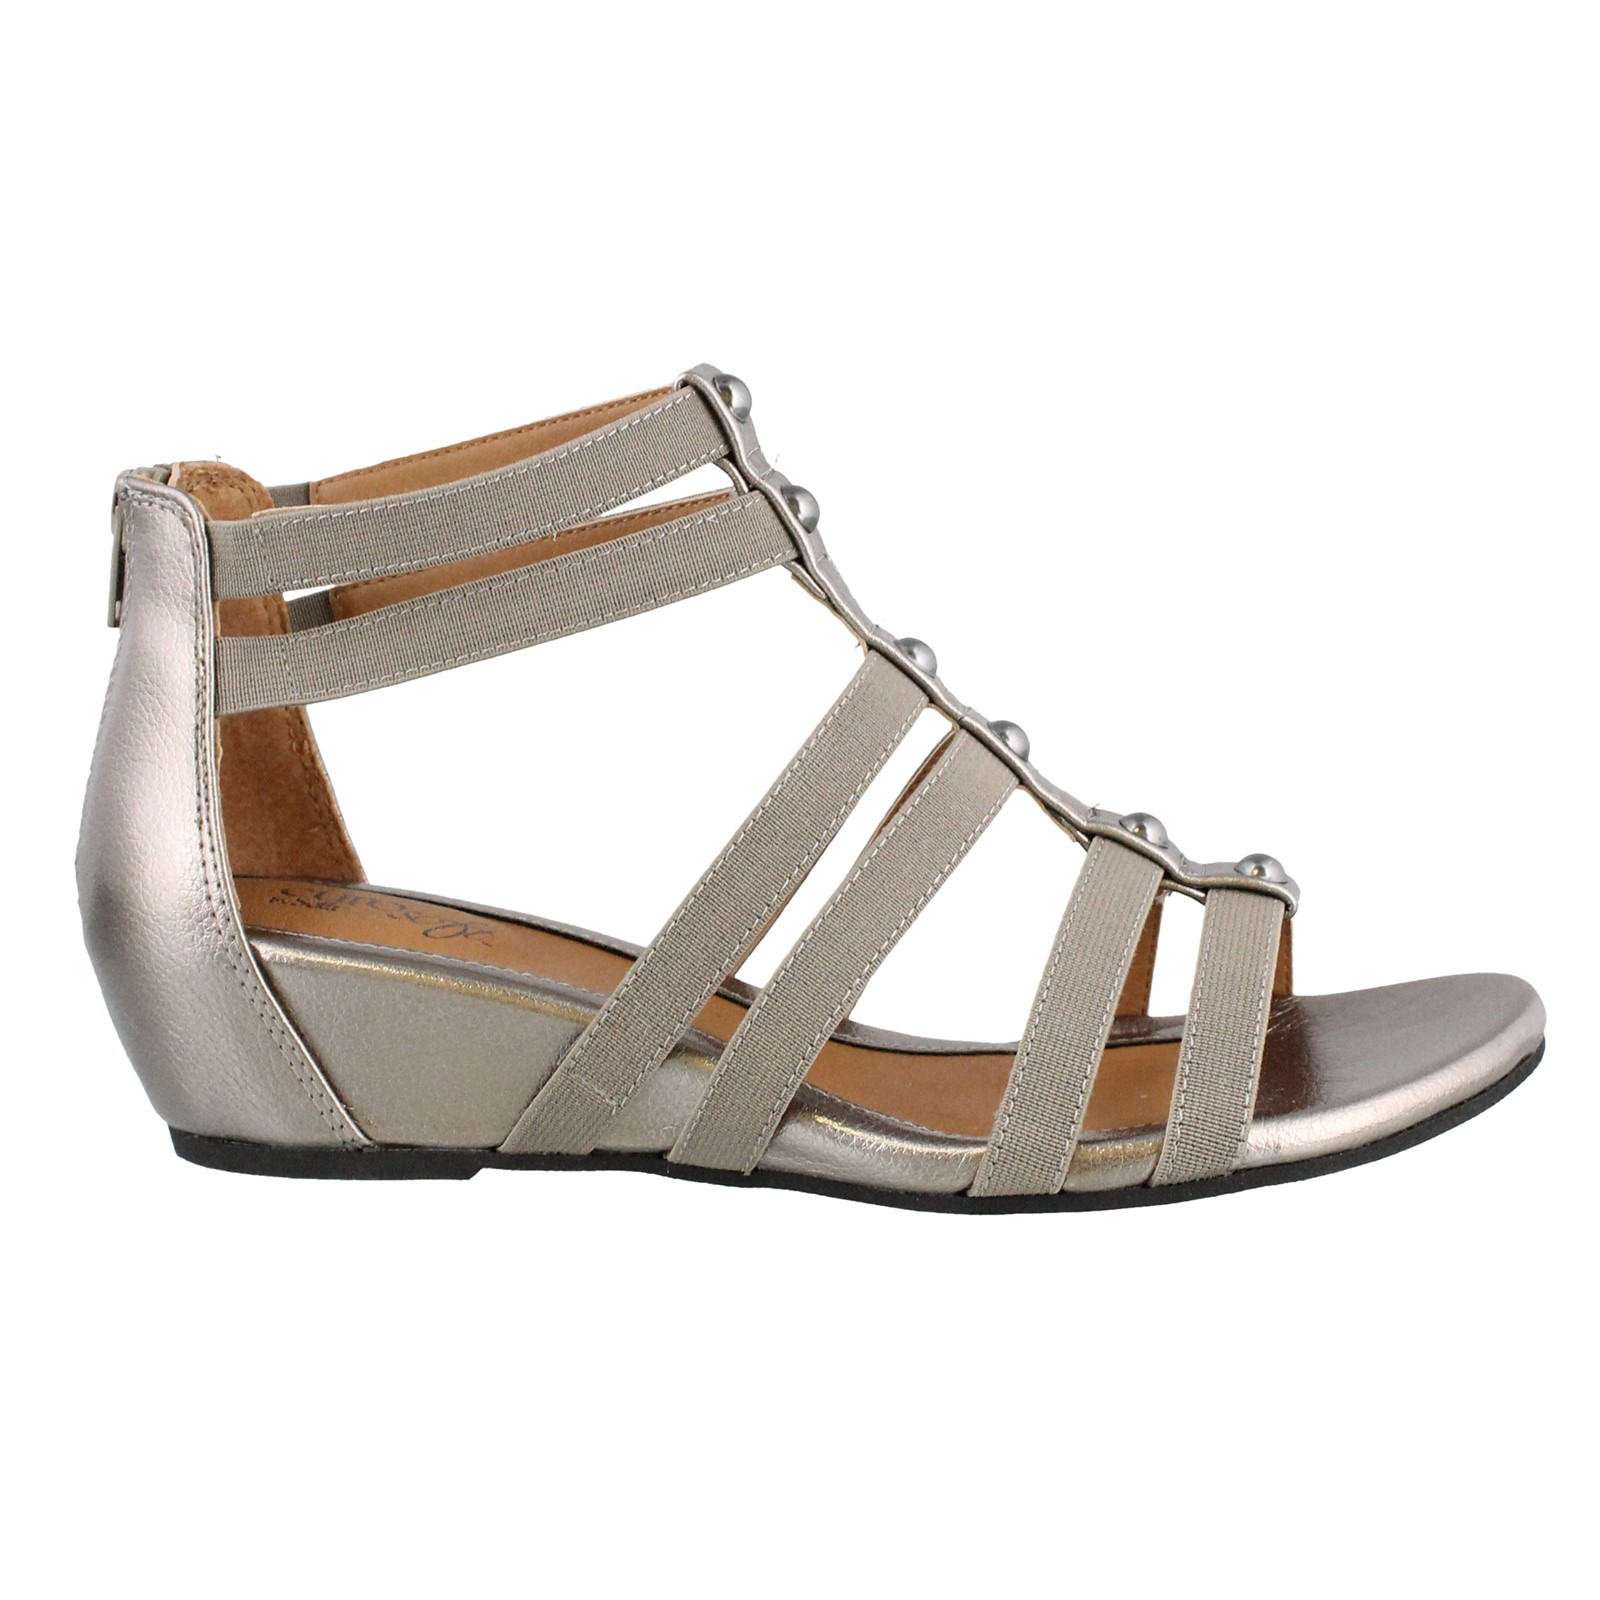 Women's Euro Soft by Sofft, Rayelle Mid Heel Sandals